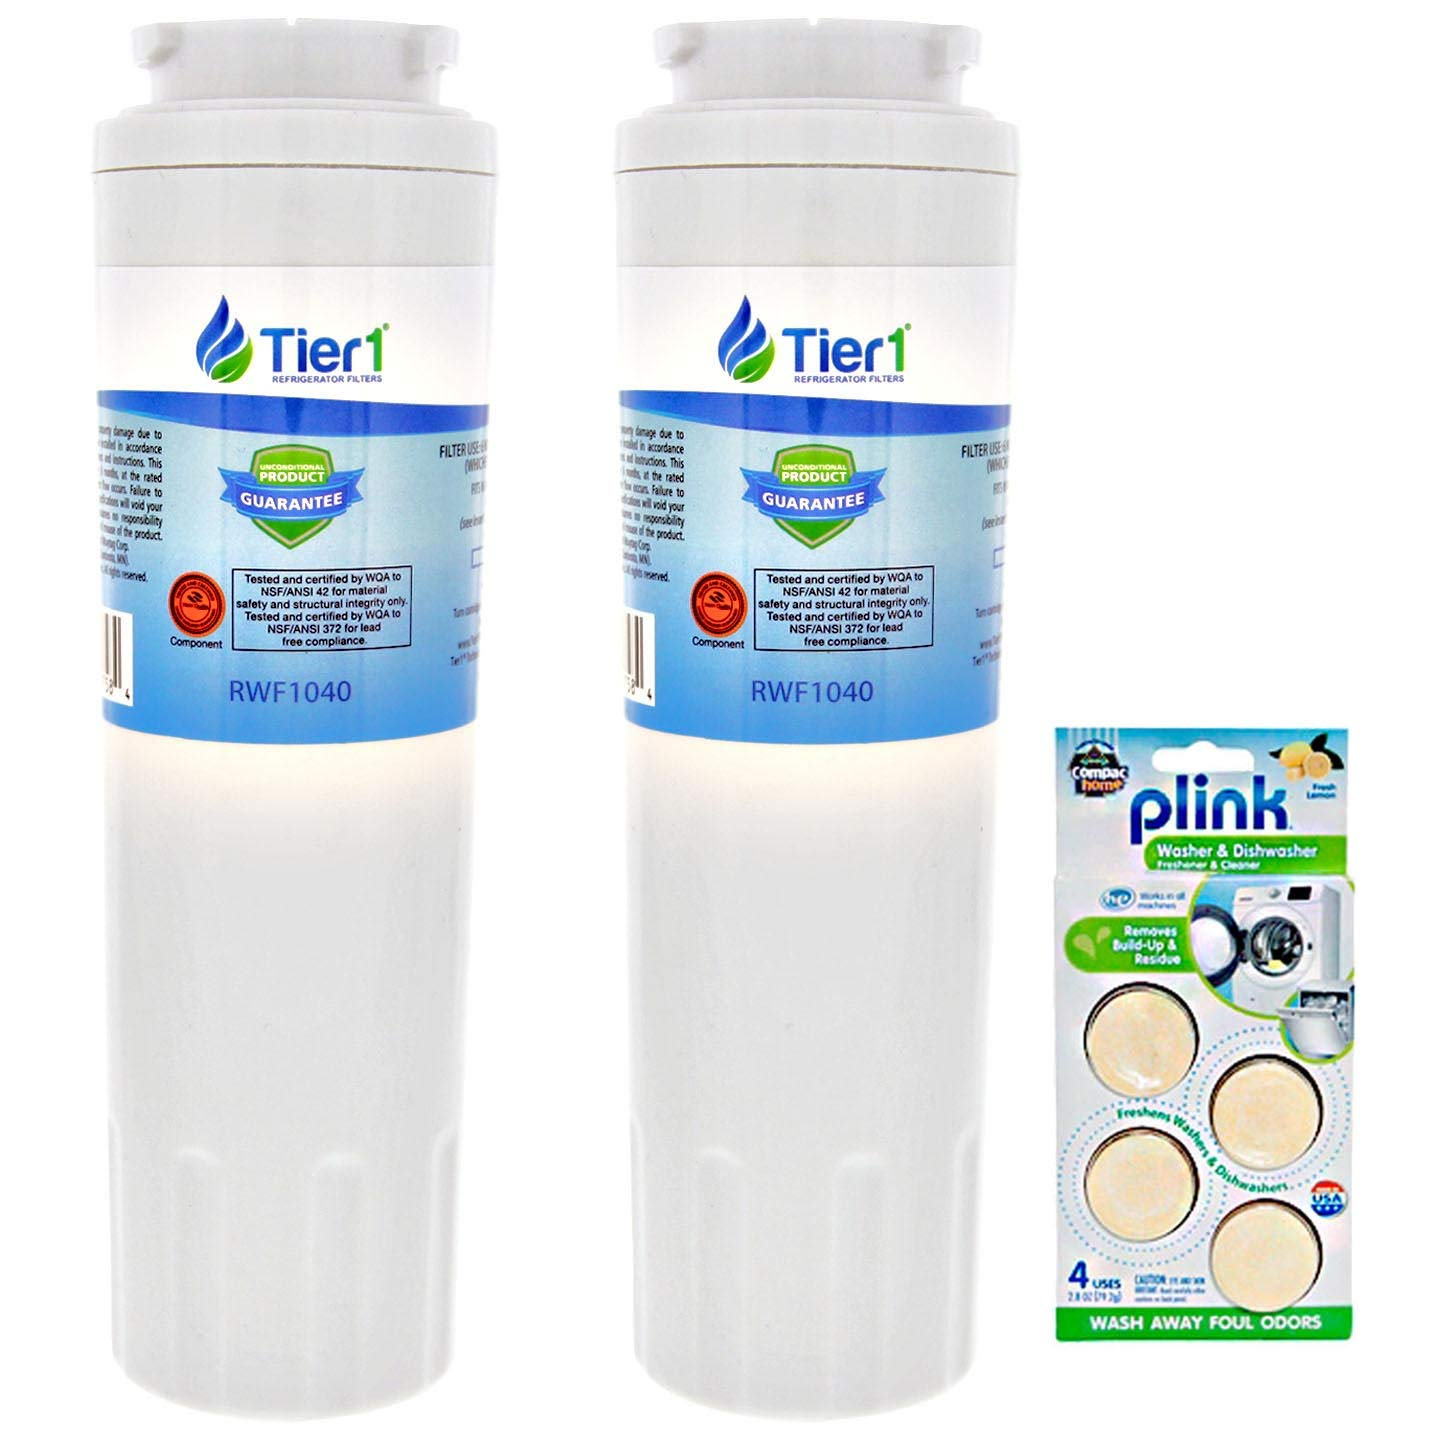 Tier1 Replacement for EveryDrop EDR4RXD1 Maytag UKF8001 Refrigerator Water Filter (3 Pack) and Washe